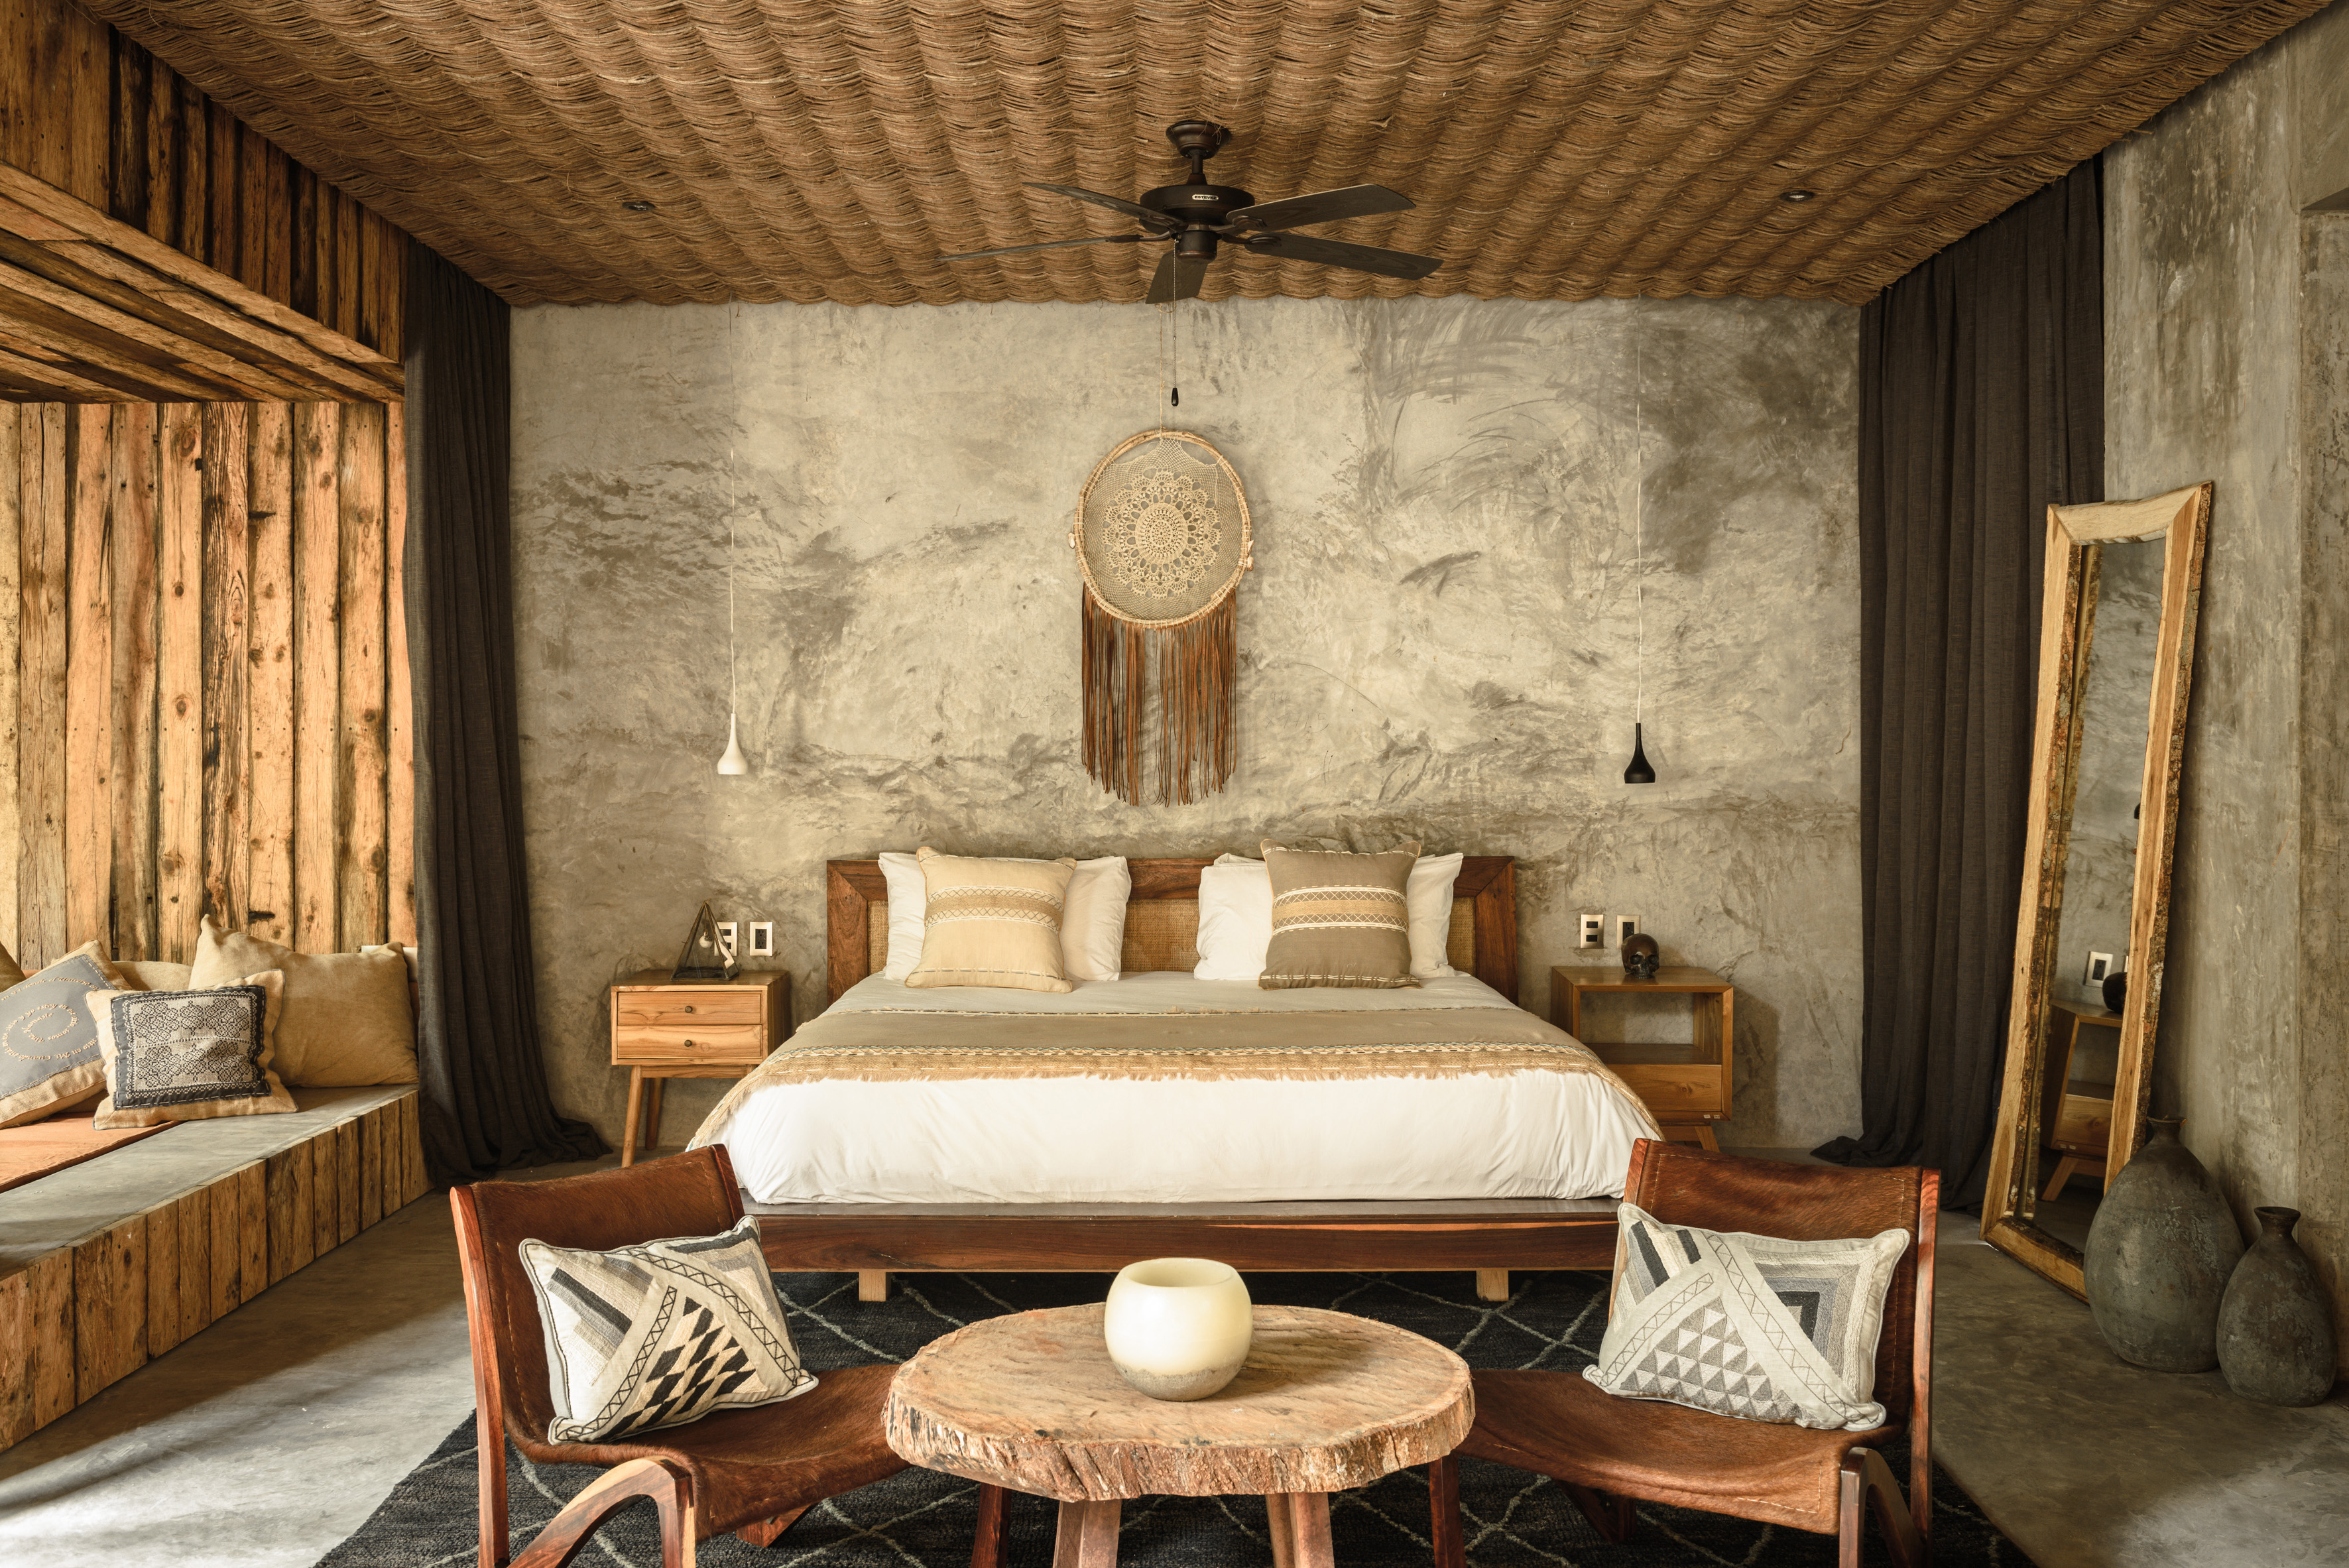 Fenster Stores Home Betulum Lifestyle Luxury Hotel Private Villas Spa